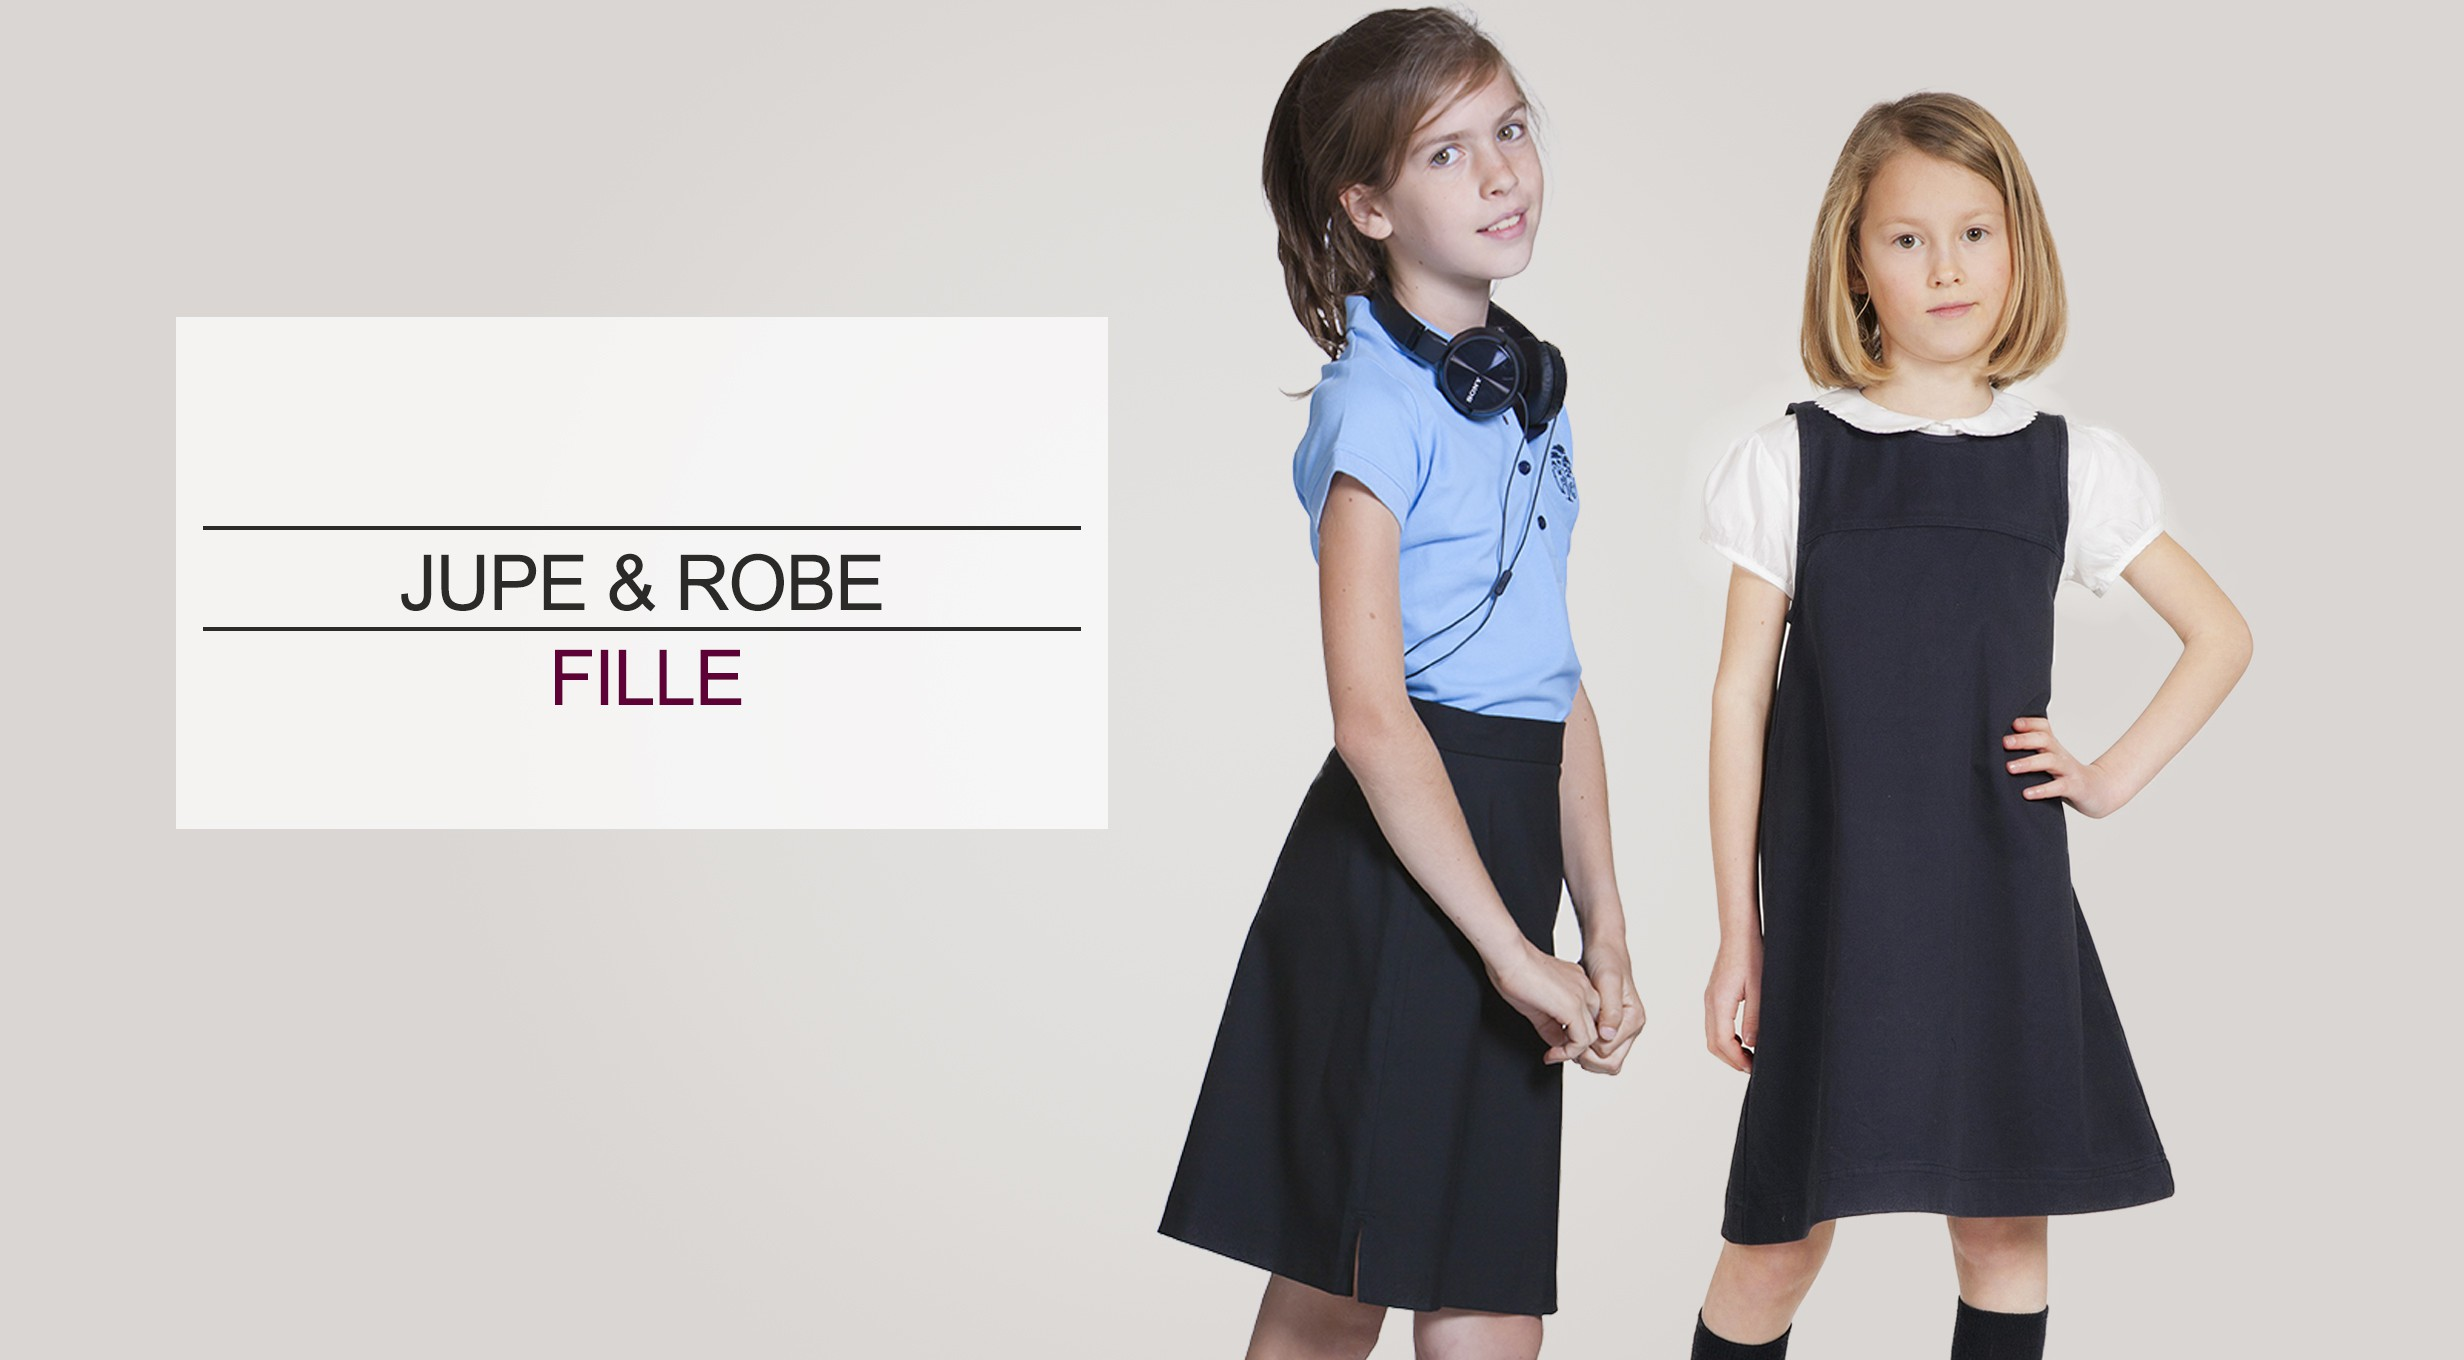 Acanthe jupe robe fille